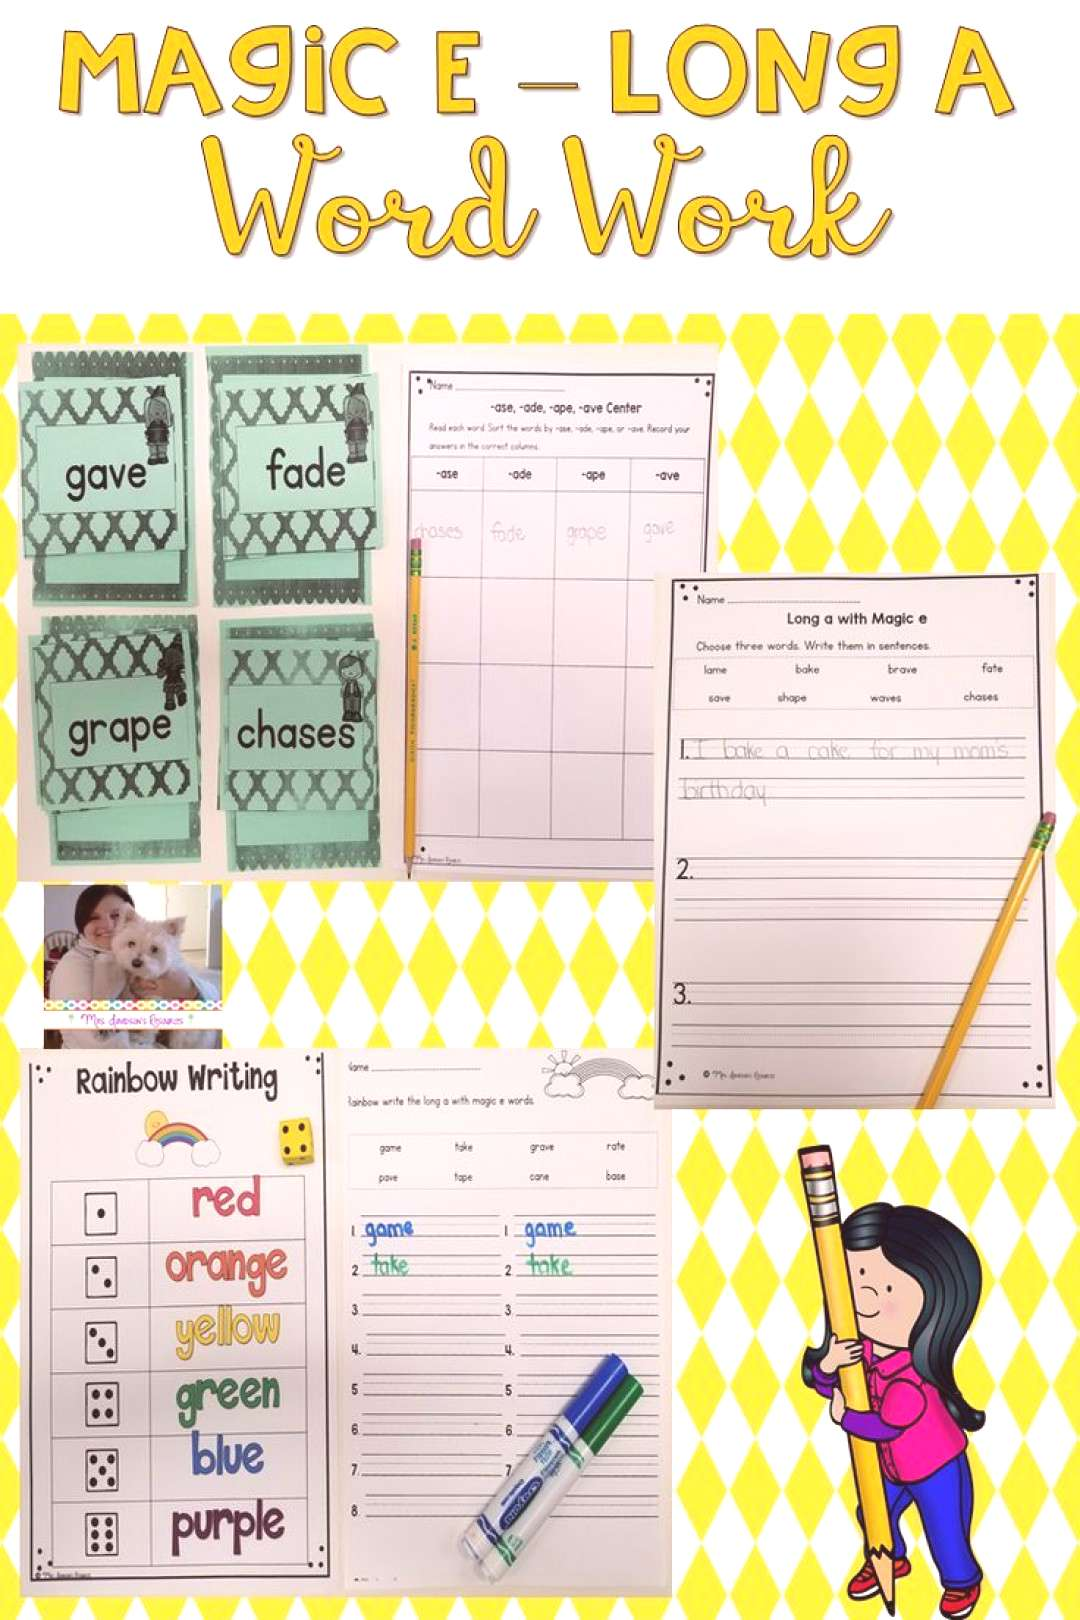 Long a Magic e Word Work These hands-on and engaging long a with magic e word work activities will